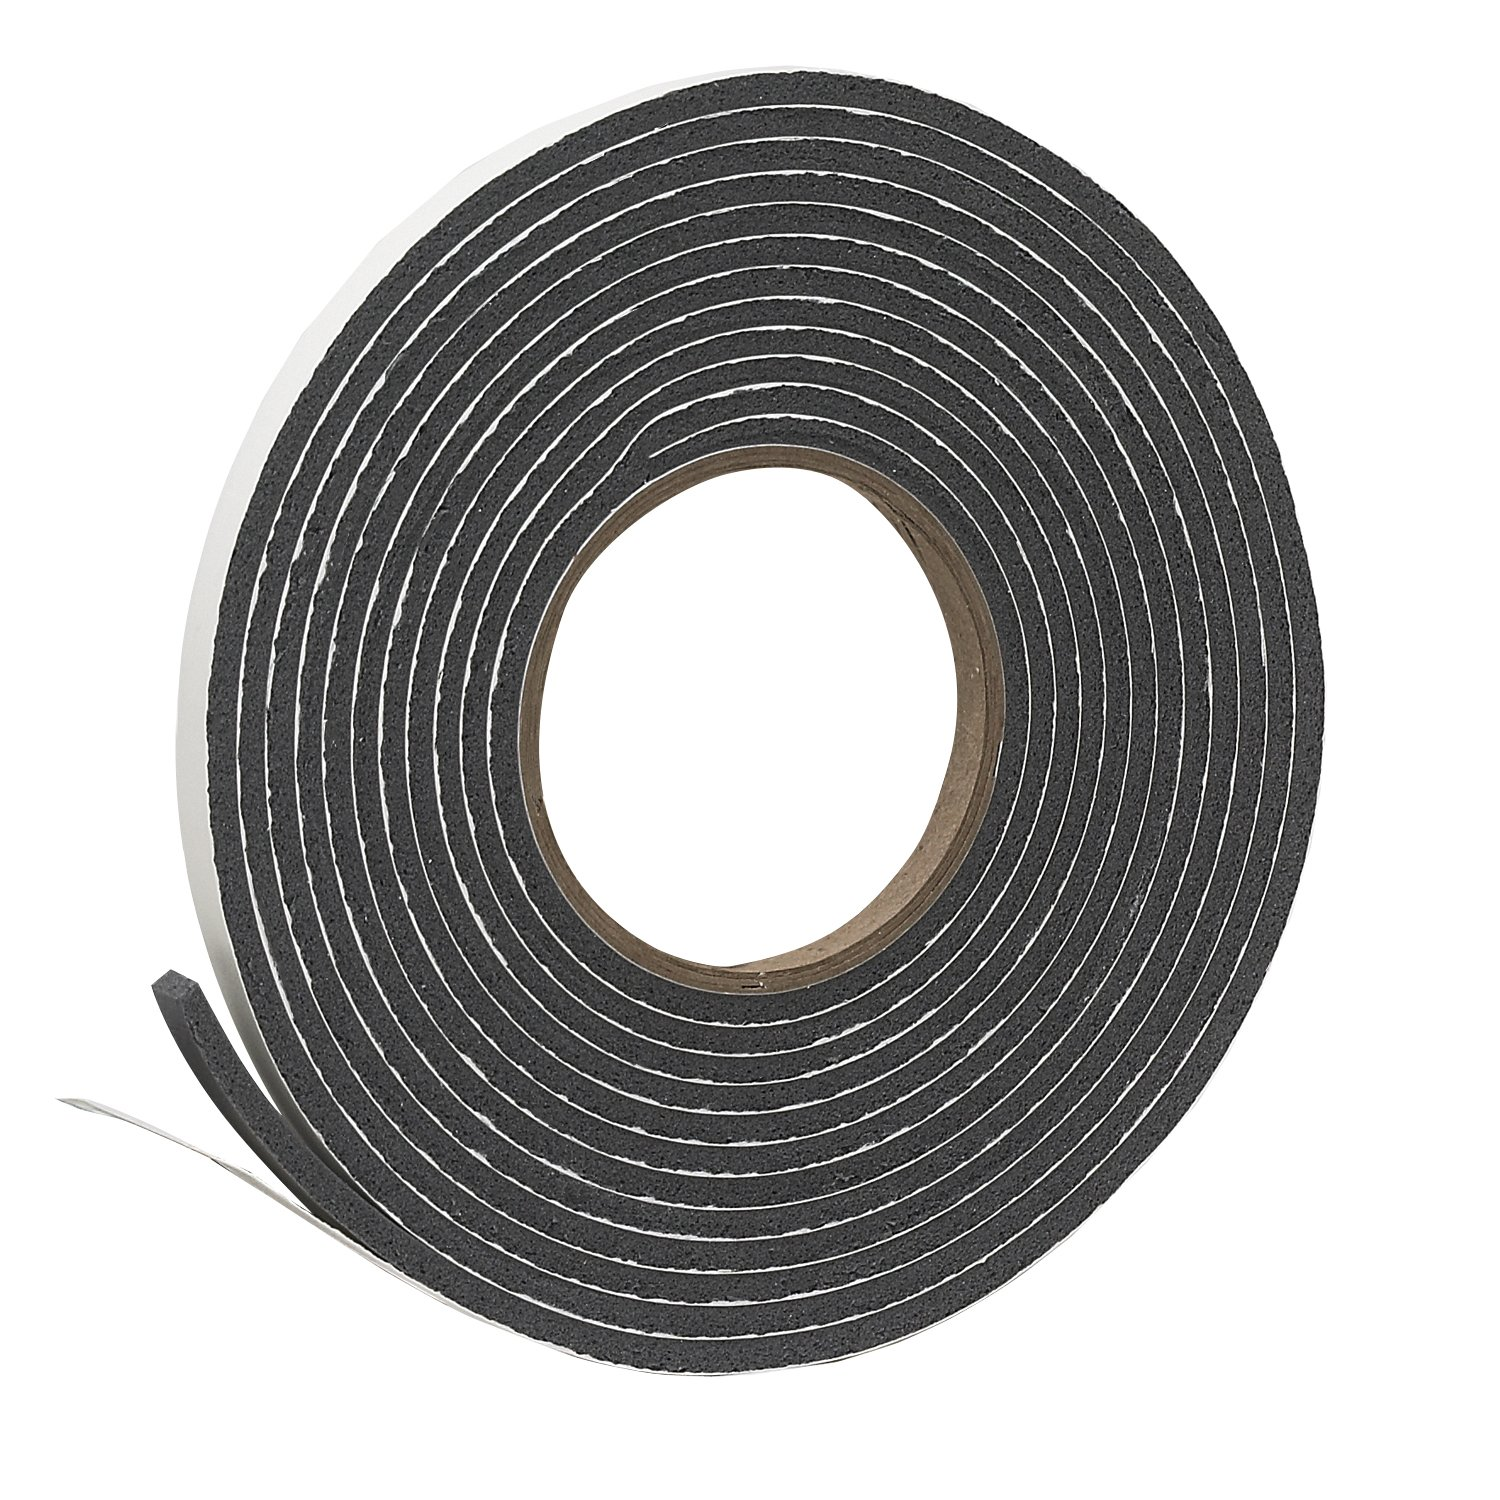 "Frost King V212GH Vinyl Foam Self-Stick Tape, Moderate Compression, 3/8"" Wide x 3/16"" Tall x 17 ft. Long, Charcoal"